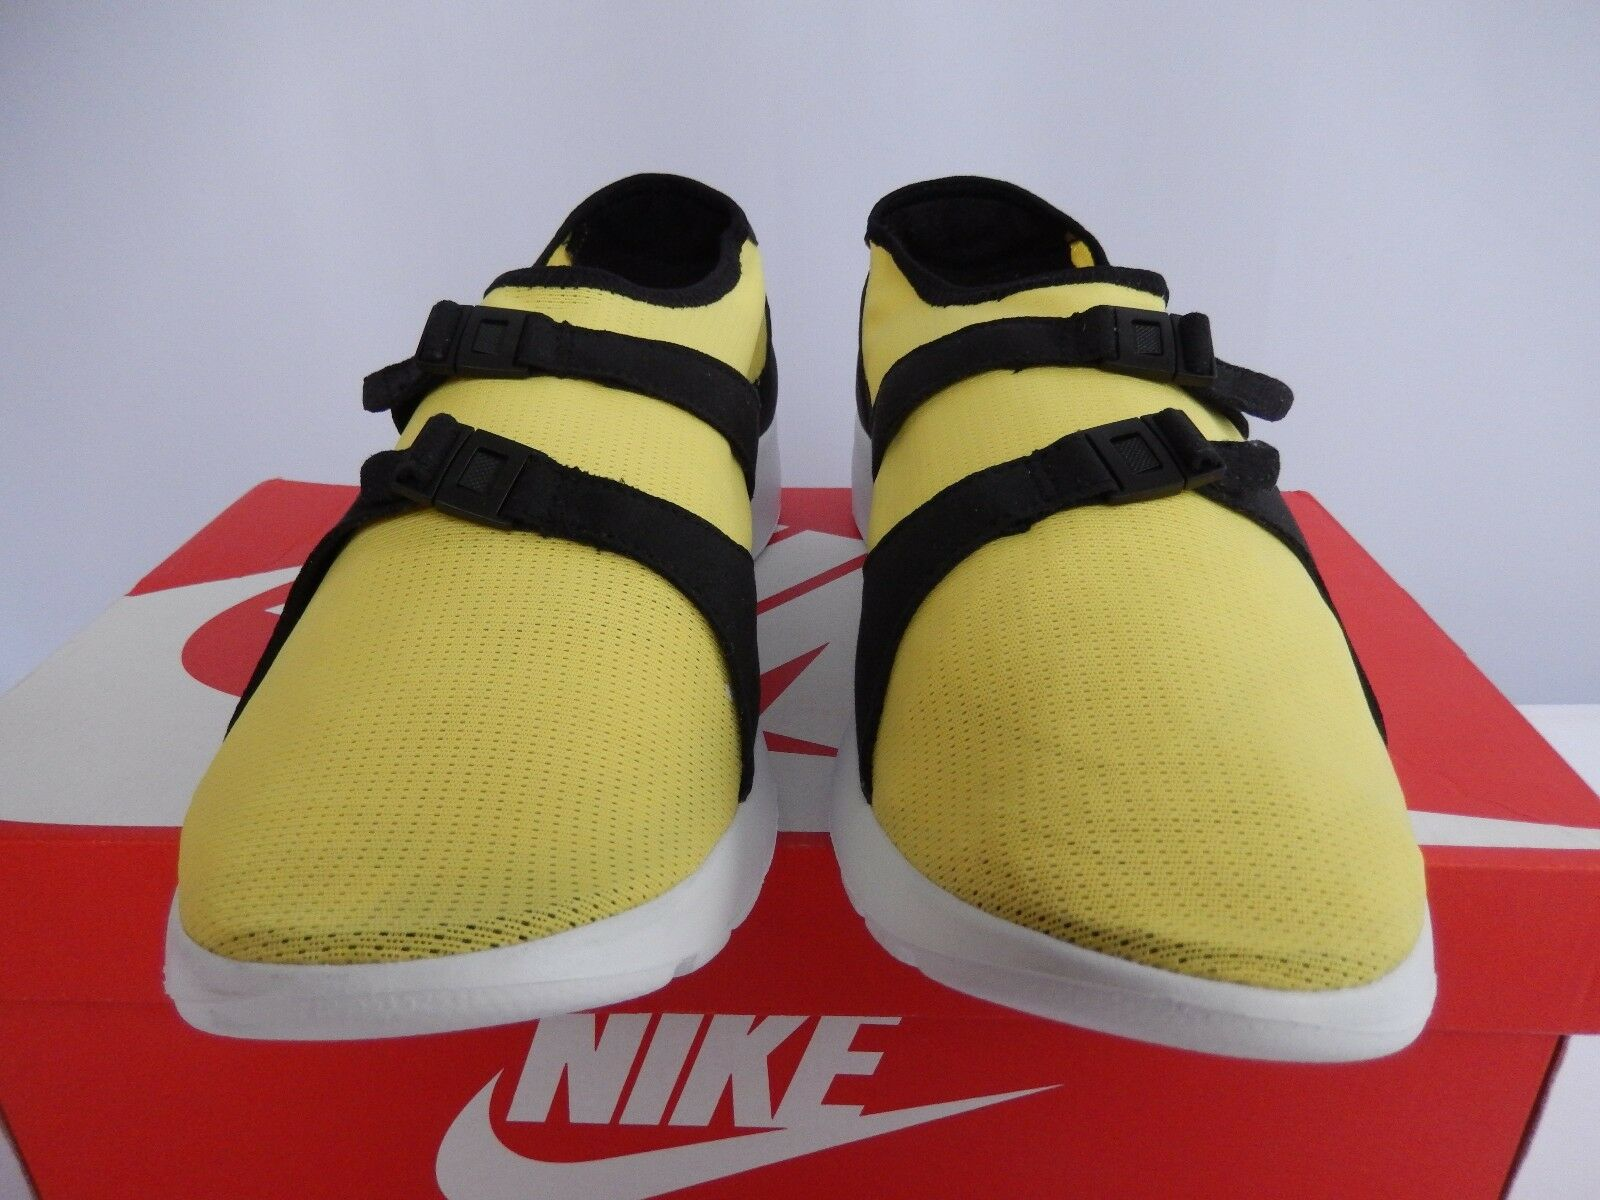 NIKE SOCK RACER SP NSW GENEALOGY OF OF OF FREE MAIZE YELLOW-BLACK SZ 13 6a76d2